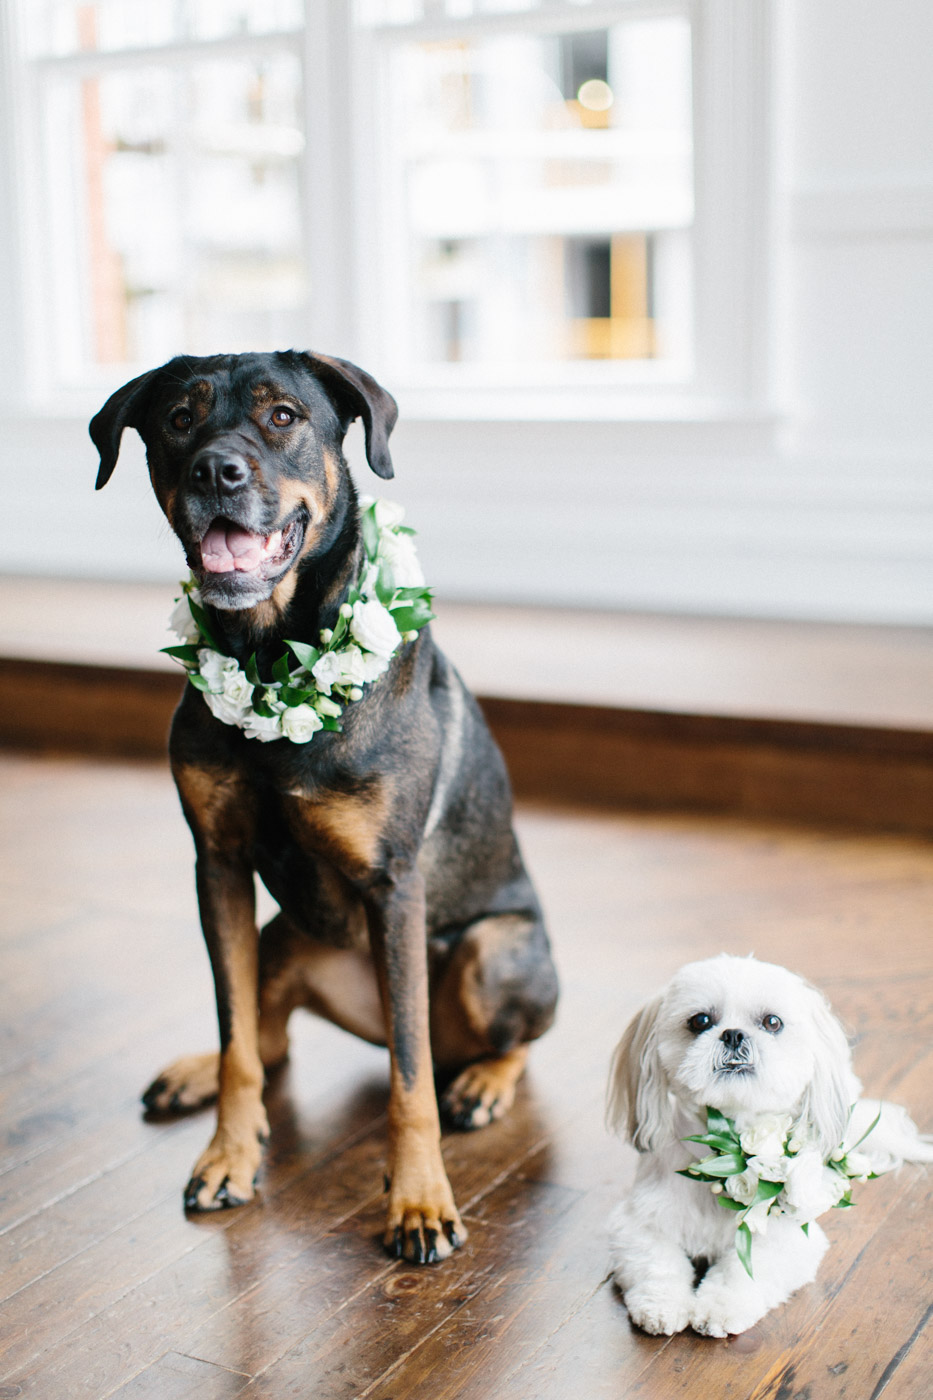 Include_dogs_in_your_wedding_photographs5.jpg